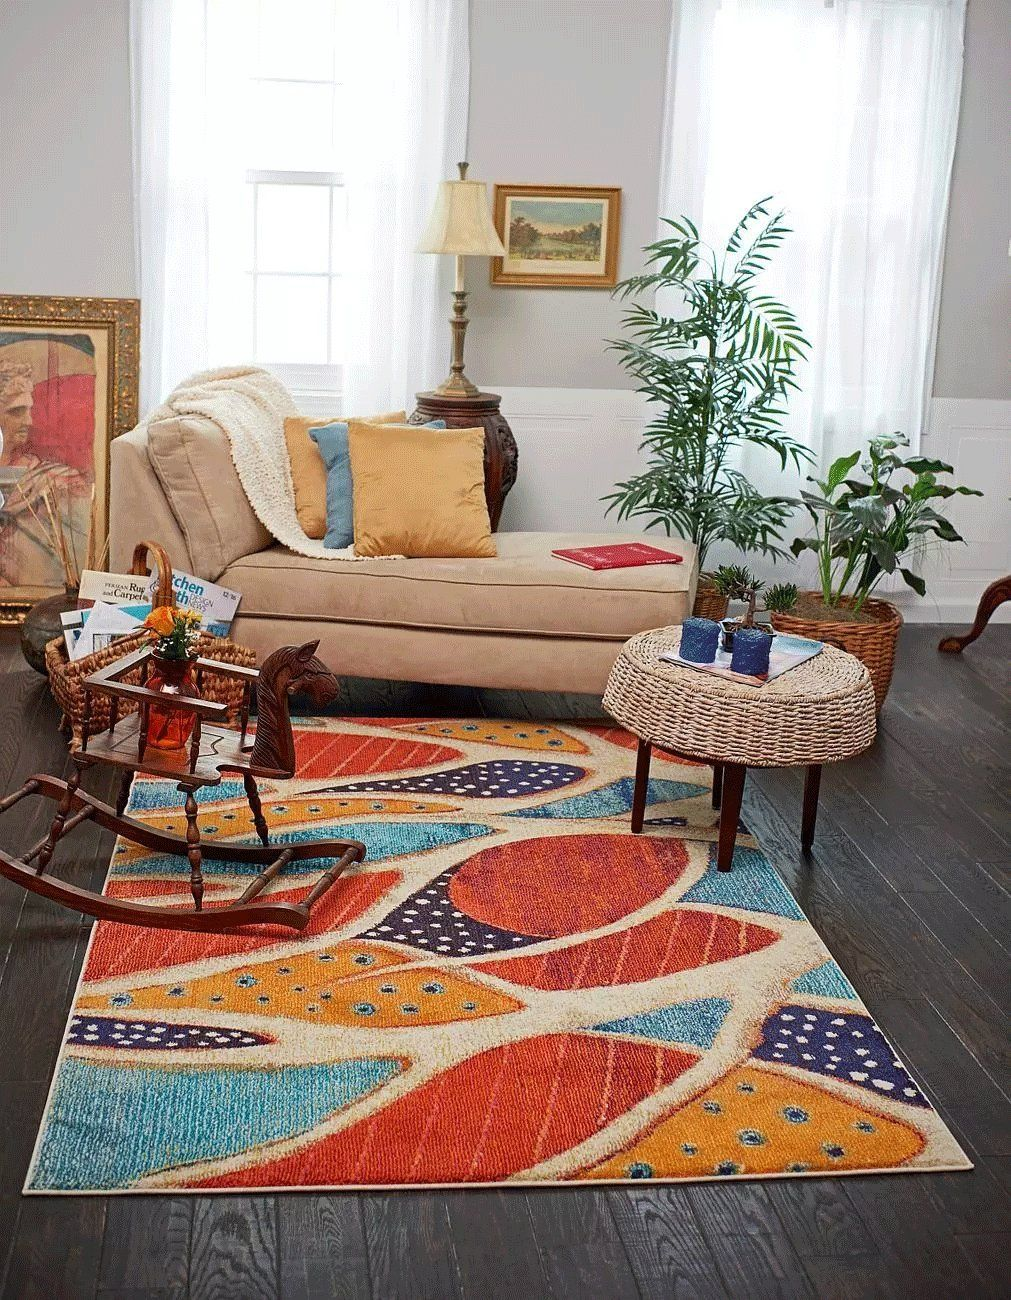 A2z Rug California Collection Rust Red 5 X 8feet Modern Area